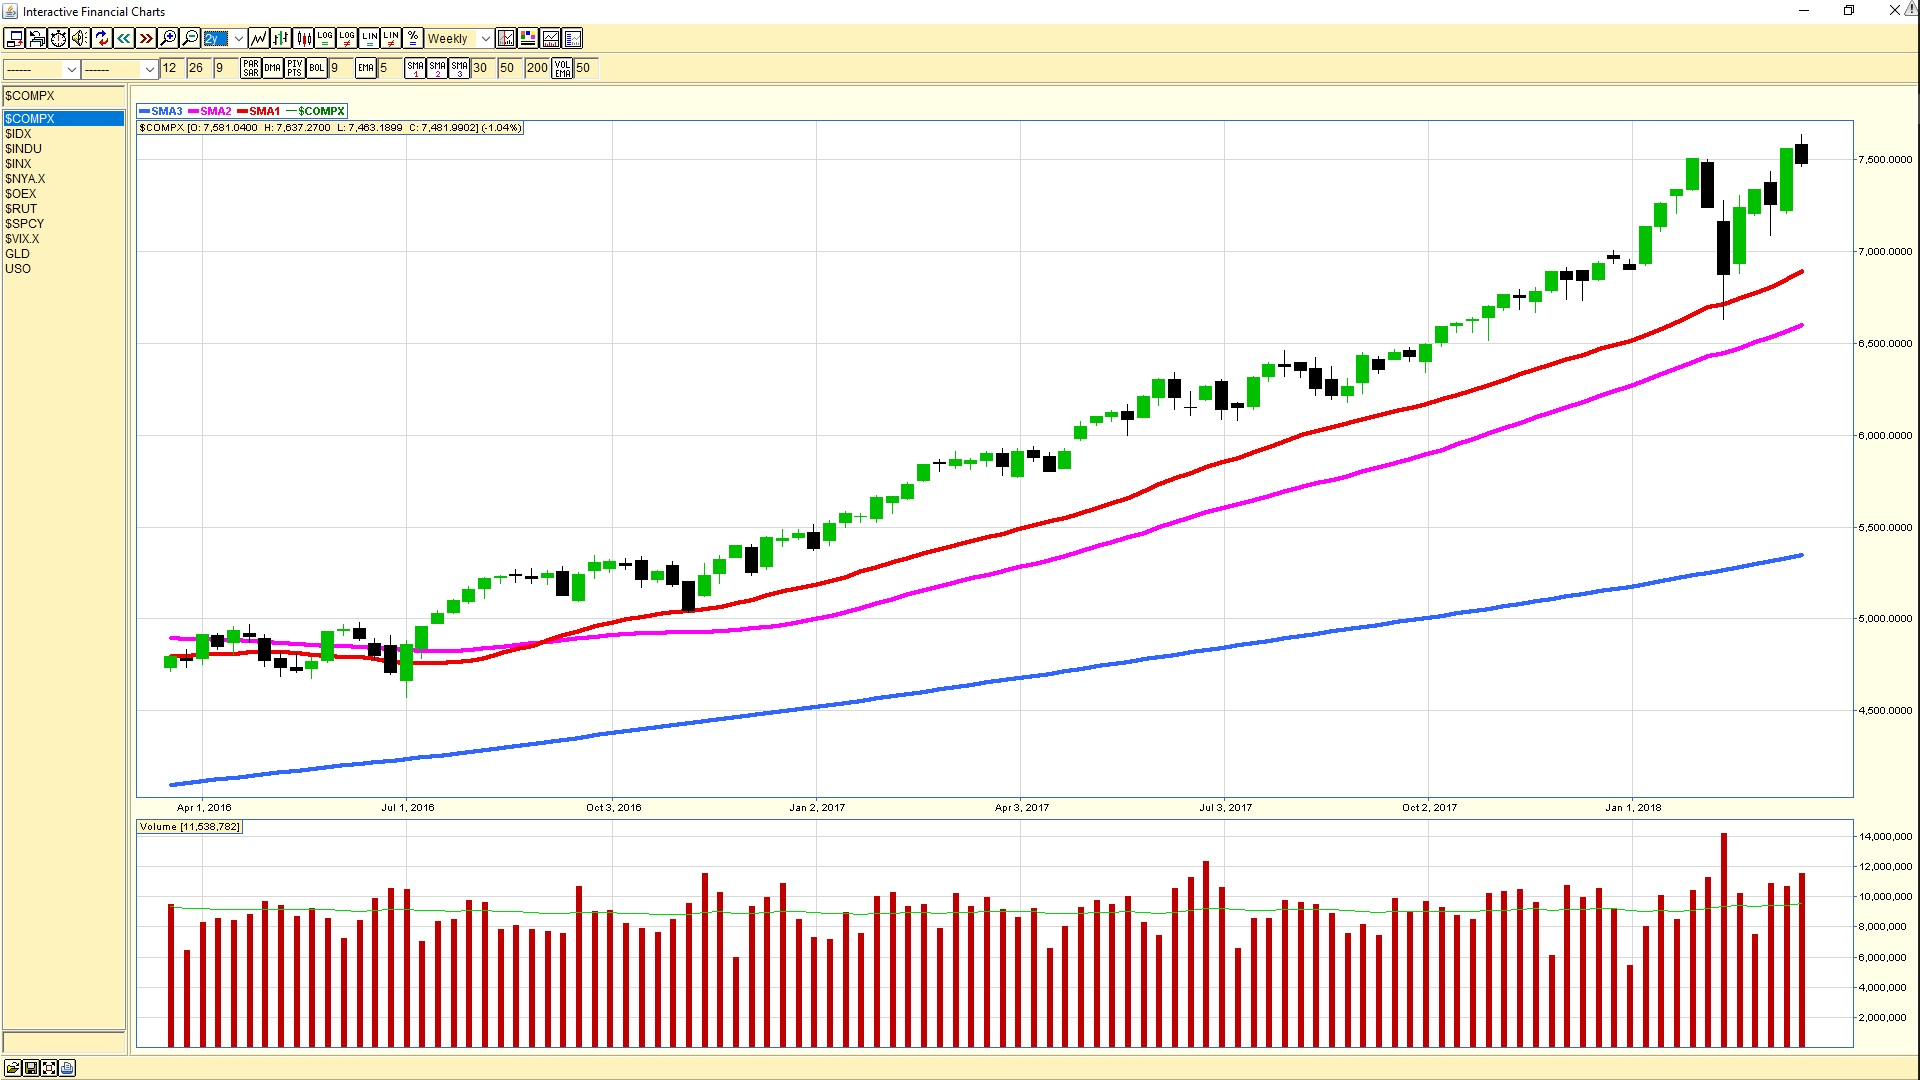 Broad market analysis march 16 2018 trading trainer 2018 03 16 nasdaq composite weekly chart biocorpaavc Choice Image